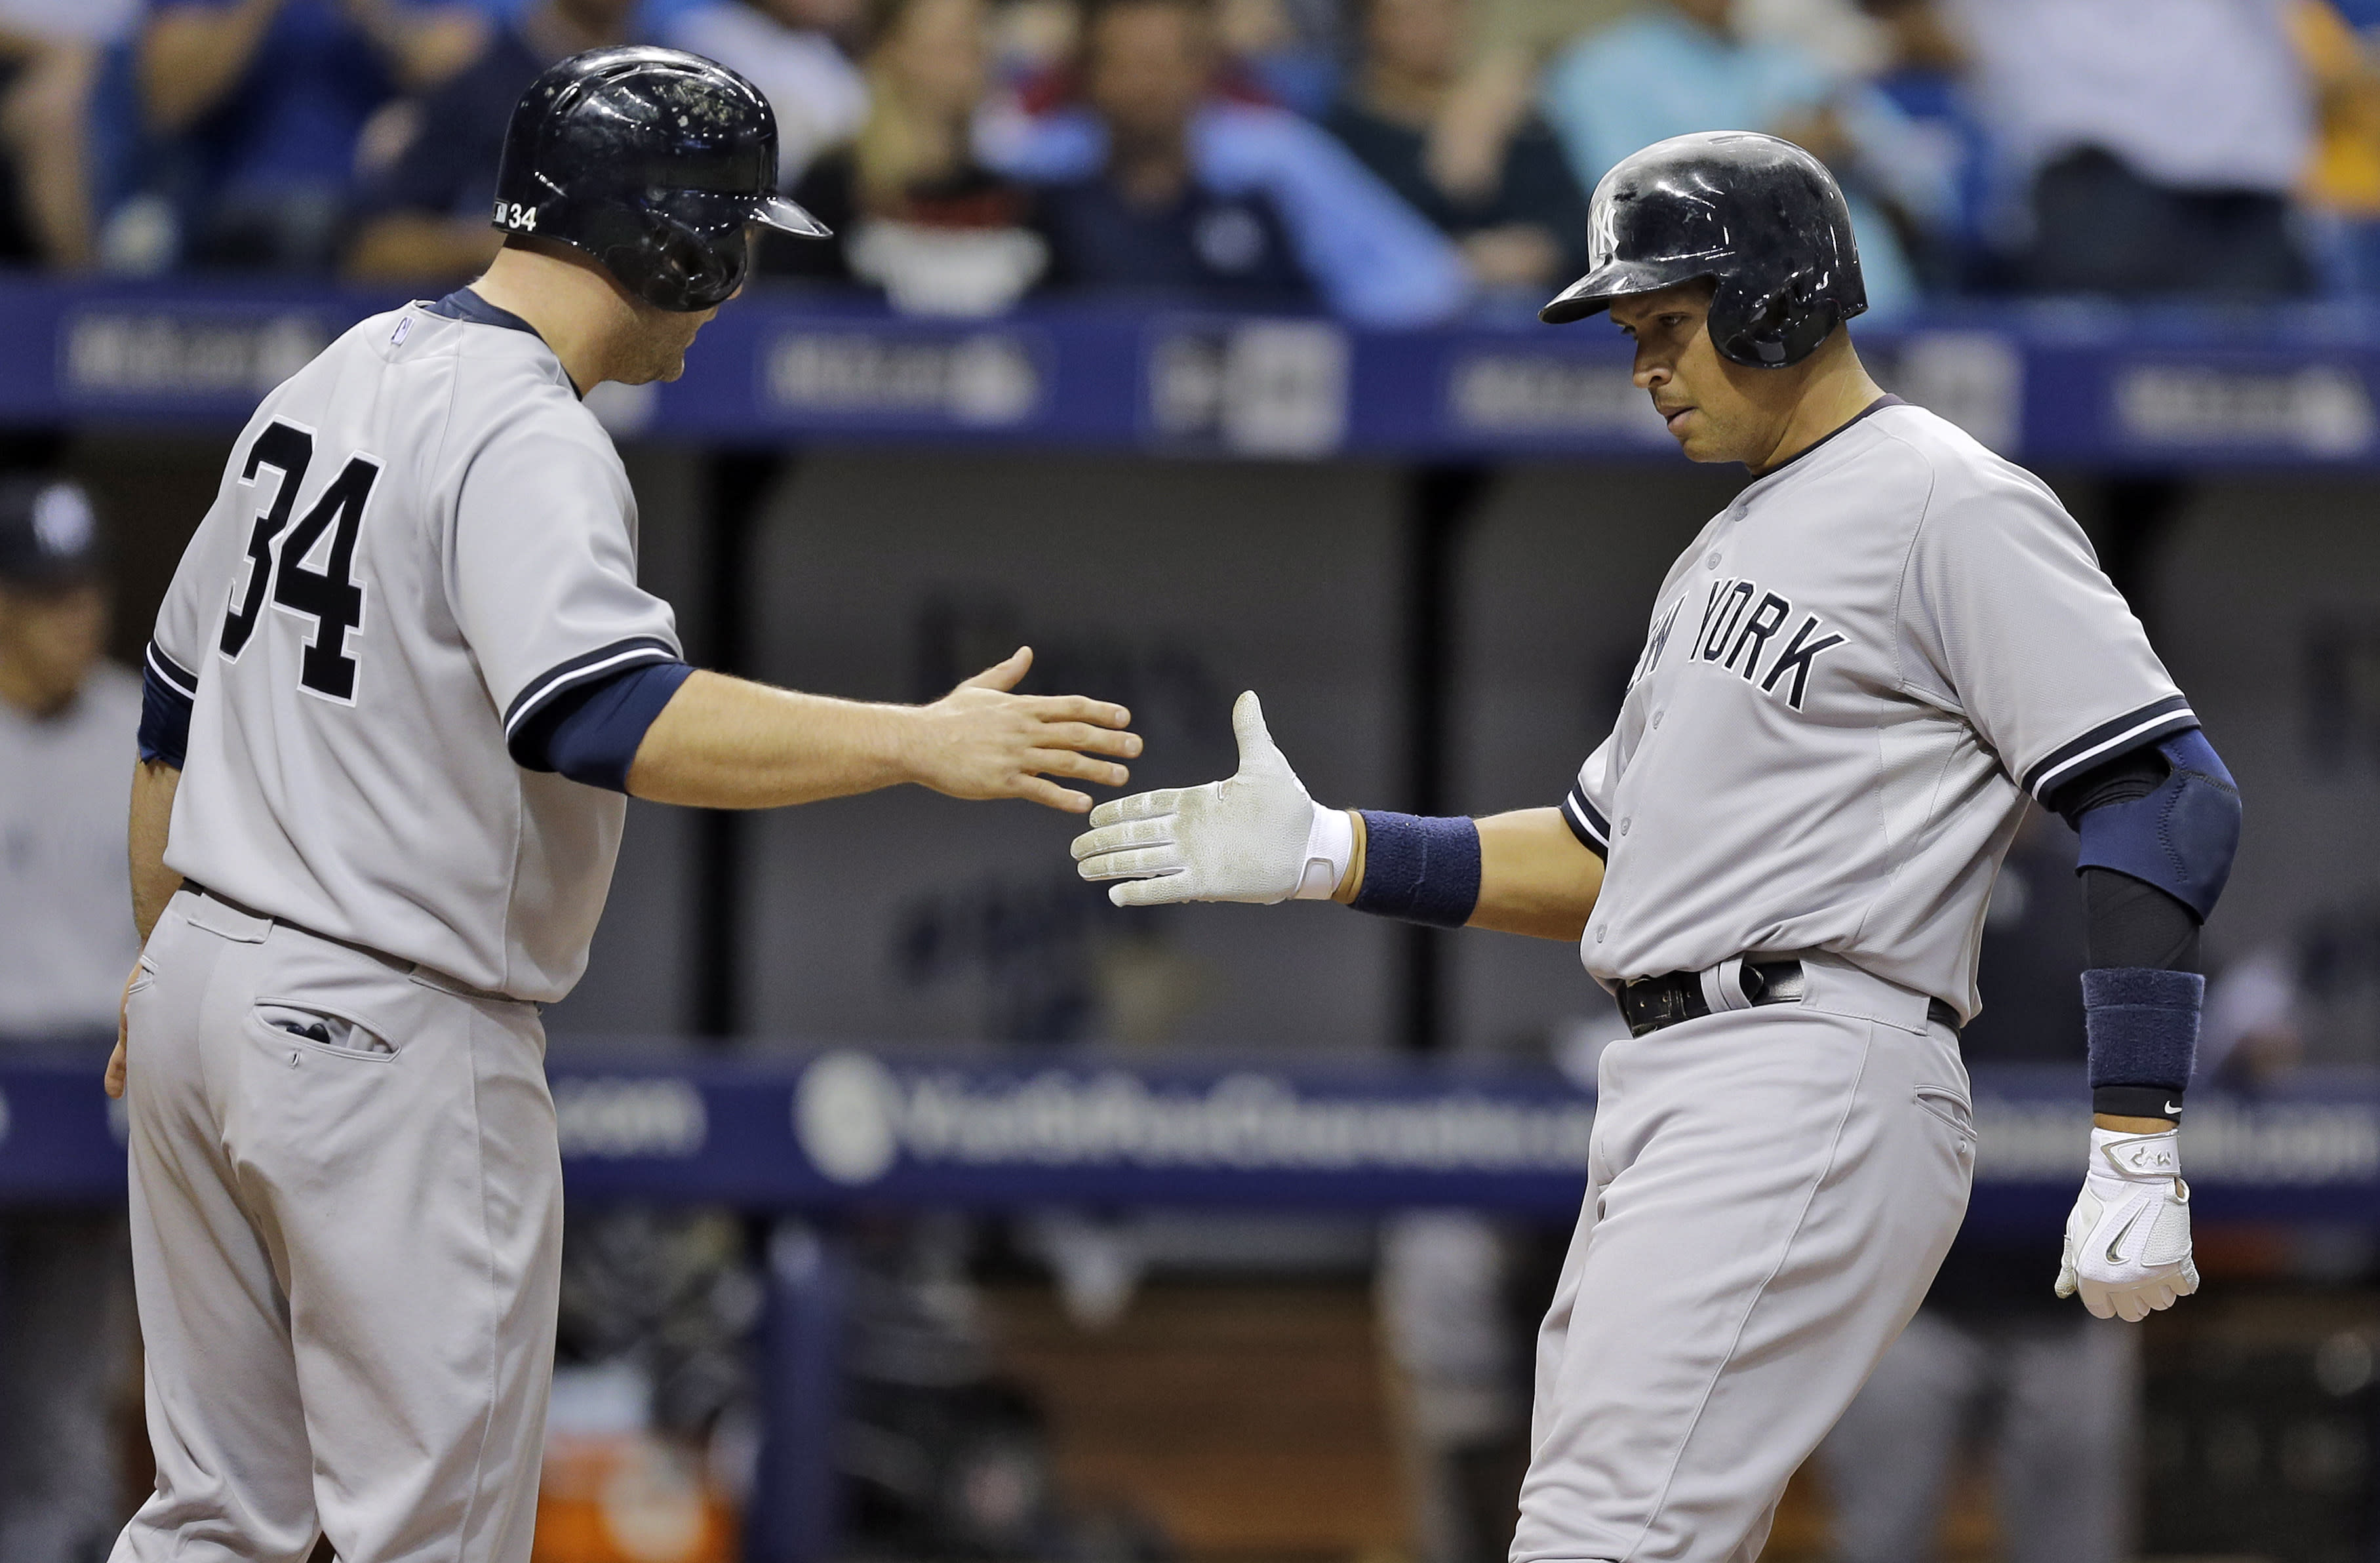 Rodriguez powers Yankees to 5-4 win over Rays